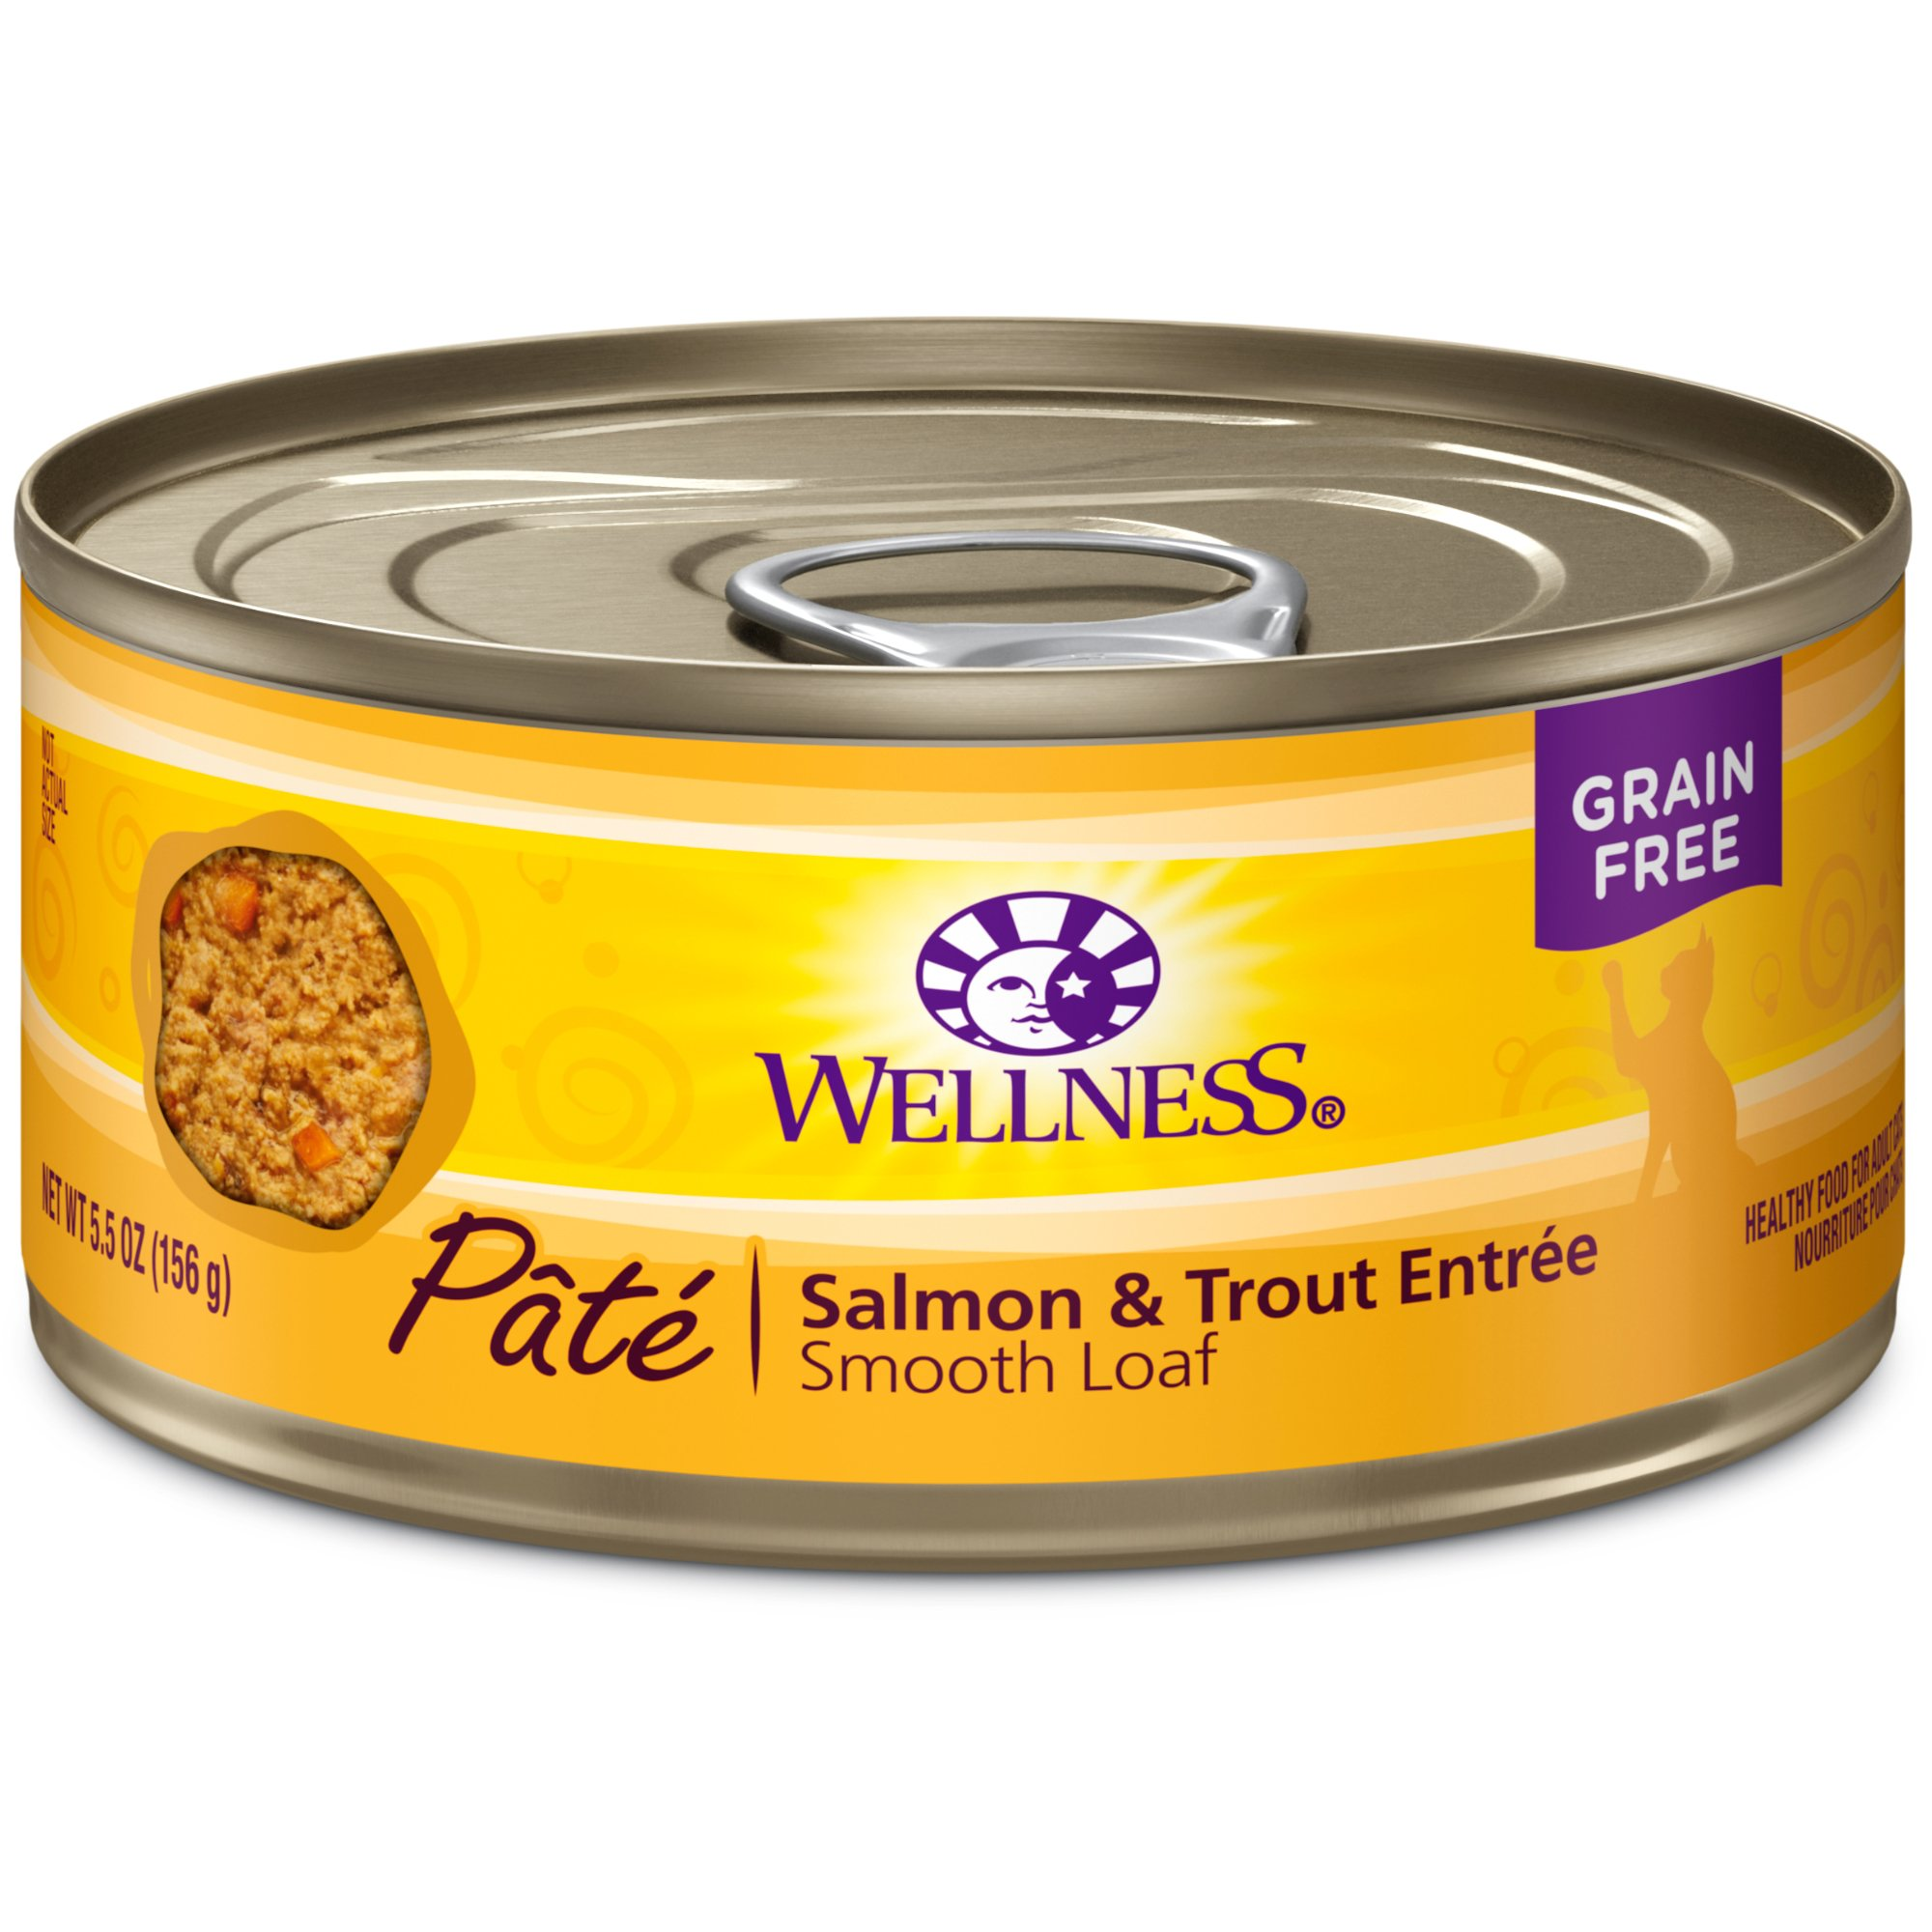 Wellness Natural Grain Free Wet Canned Cat Food, Salmon & Trout Pate, 5.5-Ounce Can (Pack Of 24) by Wellness Natural Pet Food